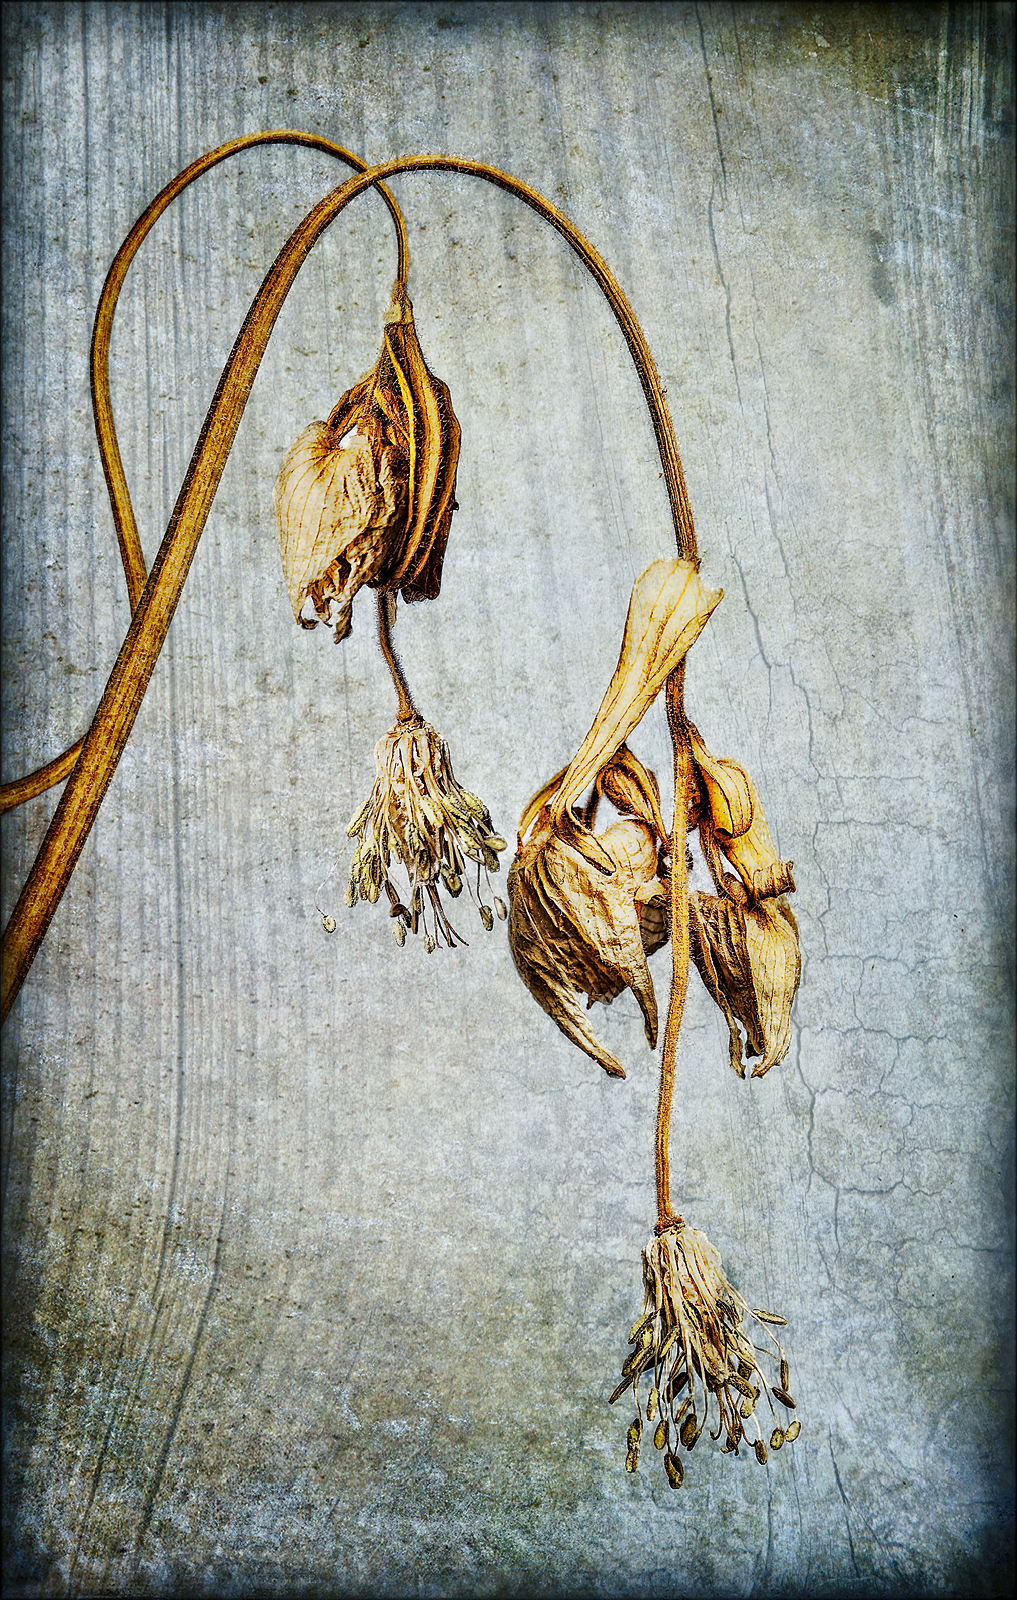 Aged Seed Heads © Fay Bowles ARPS